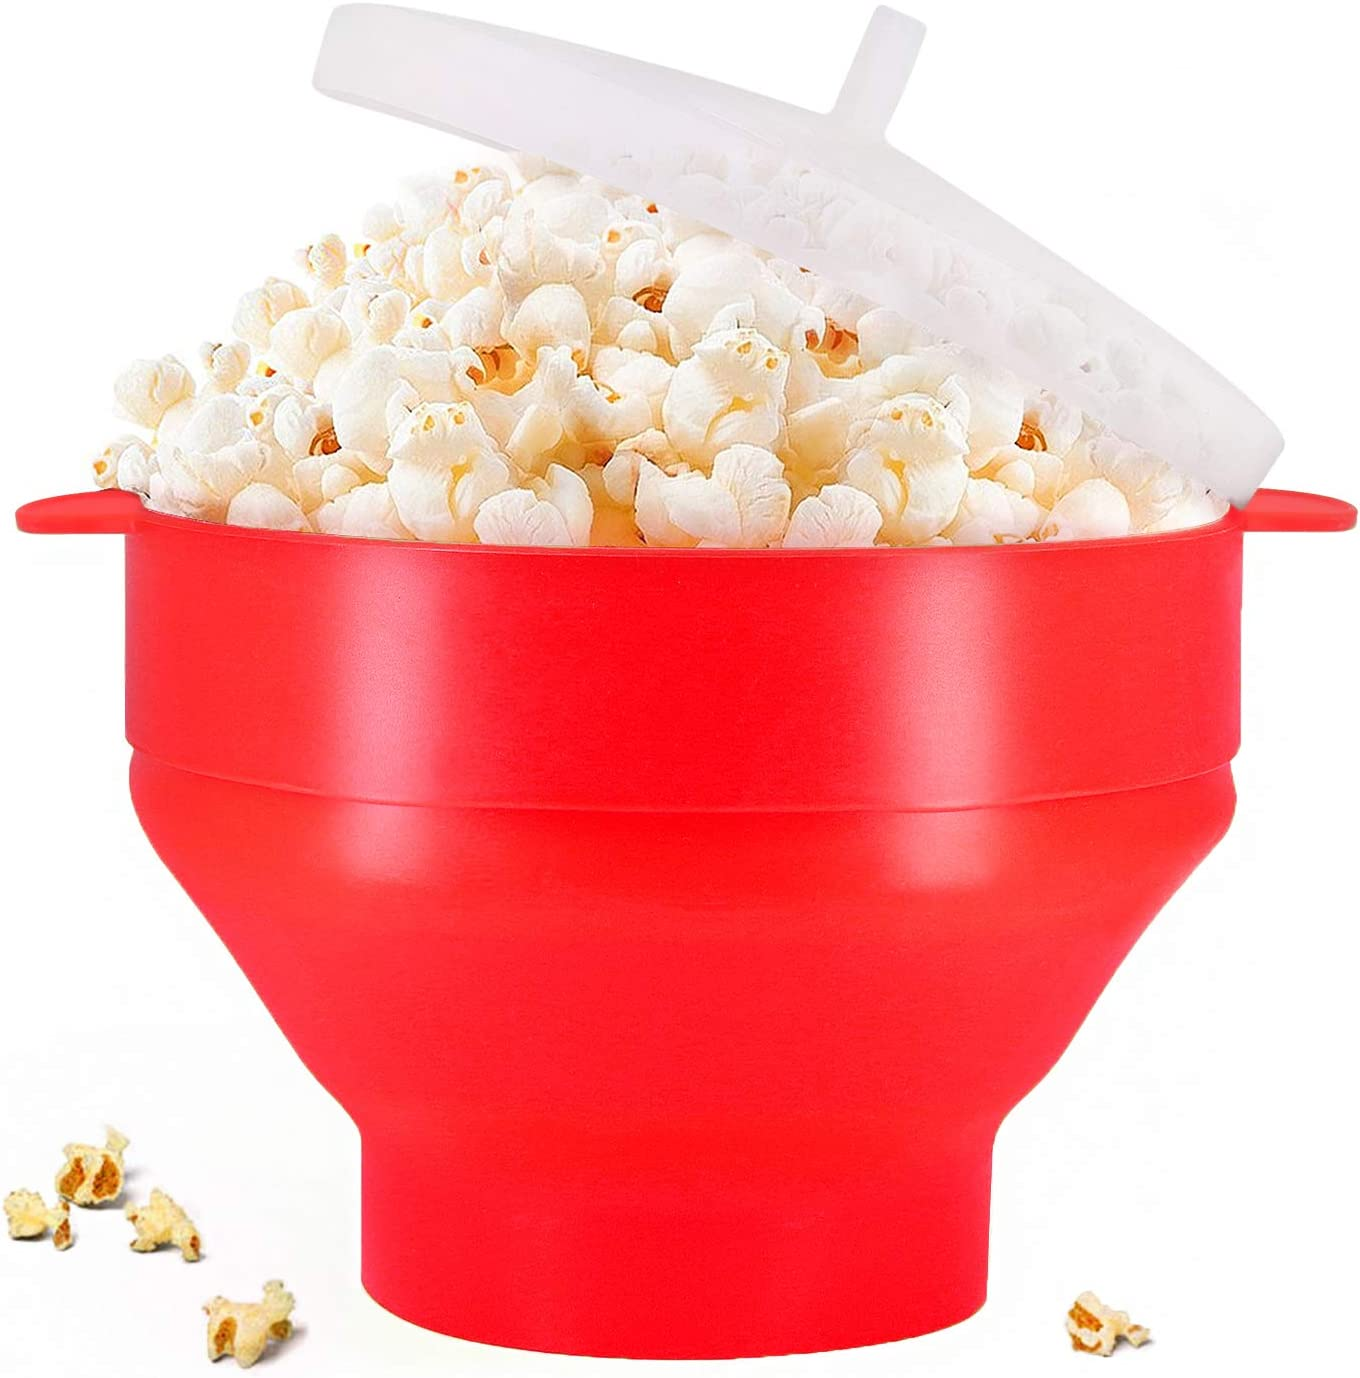 Use In Microwave or Oven Red Original Microwaveable Silicone Popcorn Popper BPA Free Collapsible Hot Air Microwavable Popcorn Maker Bowl